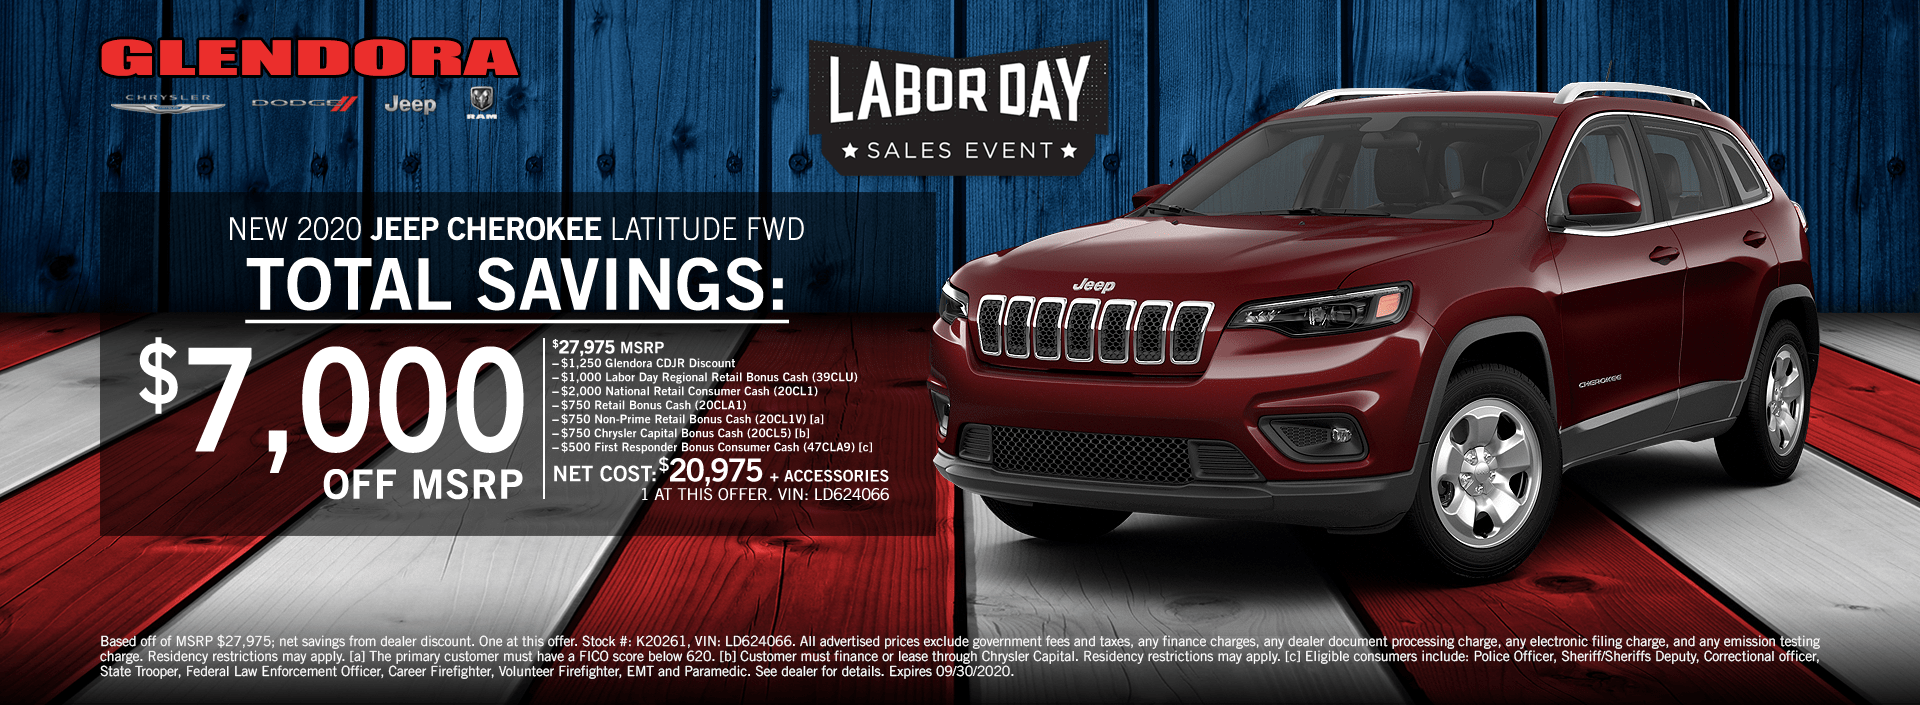 Jeep Cherokee Labor Day Sales Event Special